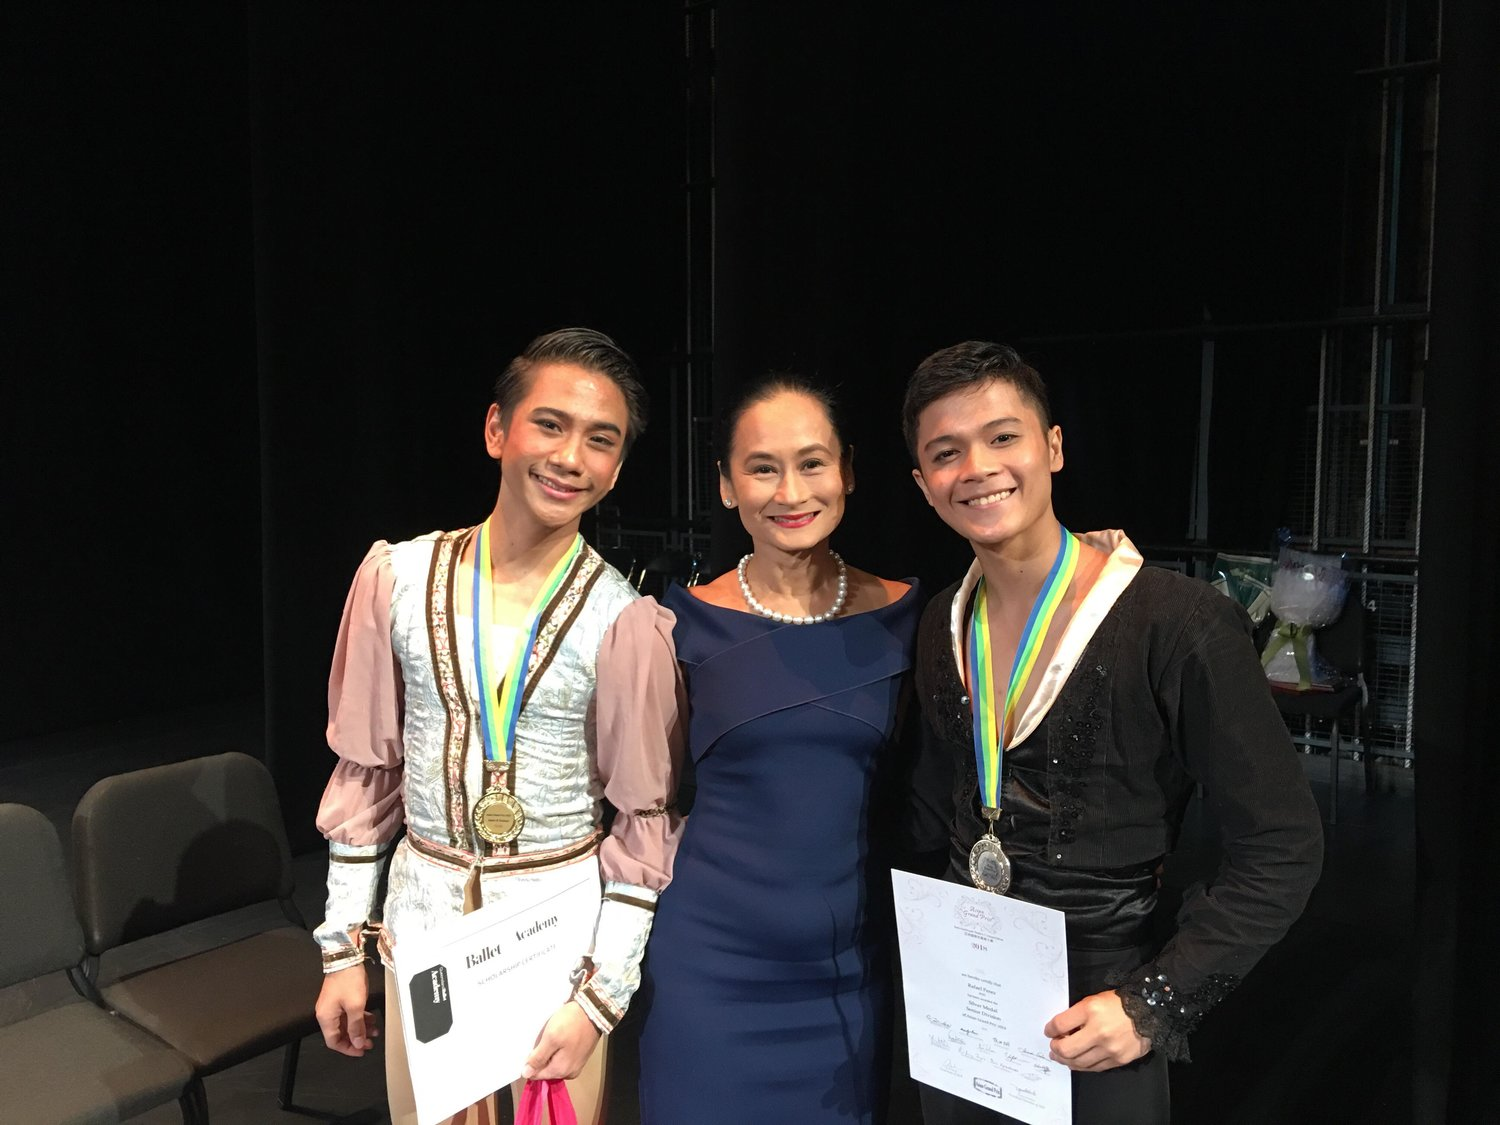 Ballet Manila's Brian Sevilla (left) won gold in Junior B and Rafael Perez (right) the silver in Senior at the 2018 Asian Grand Prix in Hong Kong. With them is Ballet Manila artistic director Lisa Macuja-Elizalde.